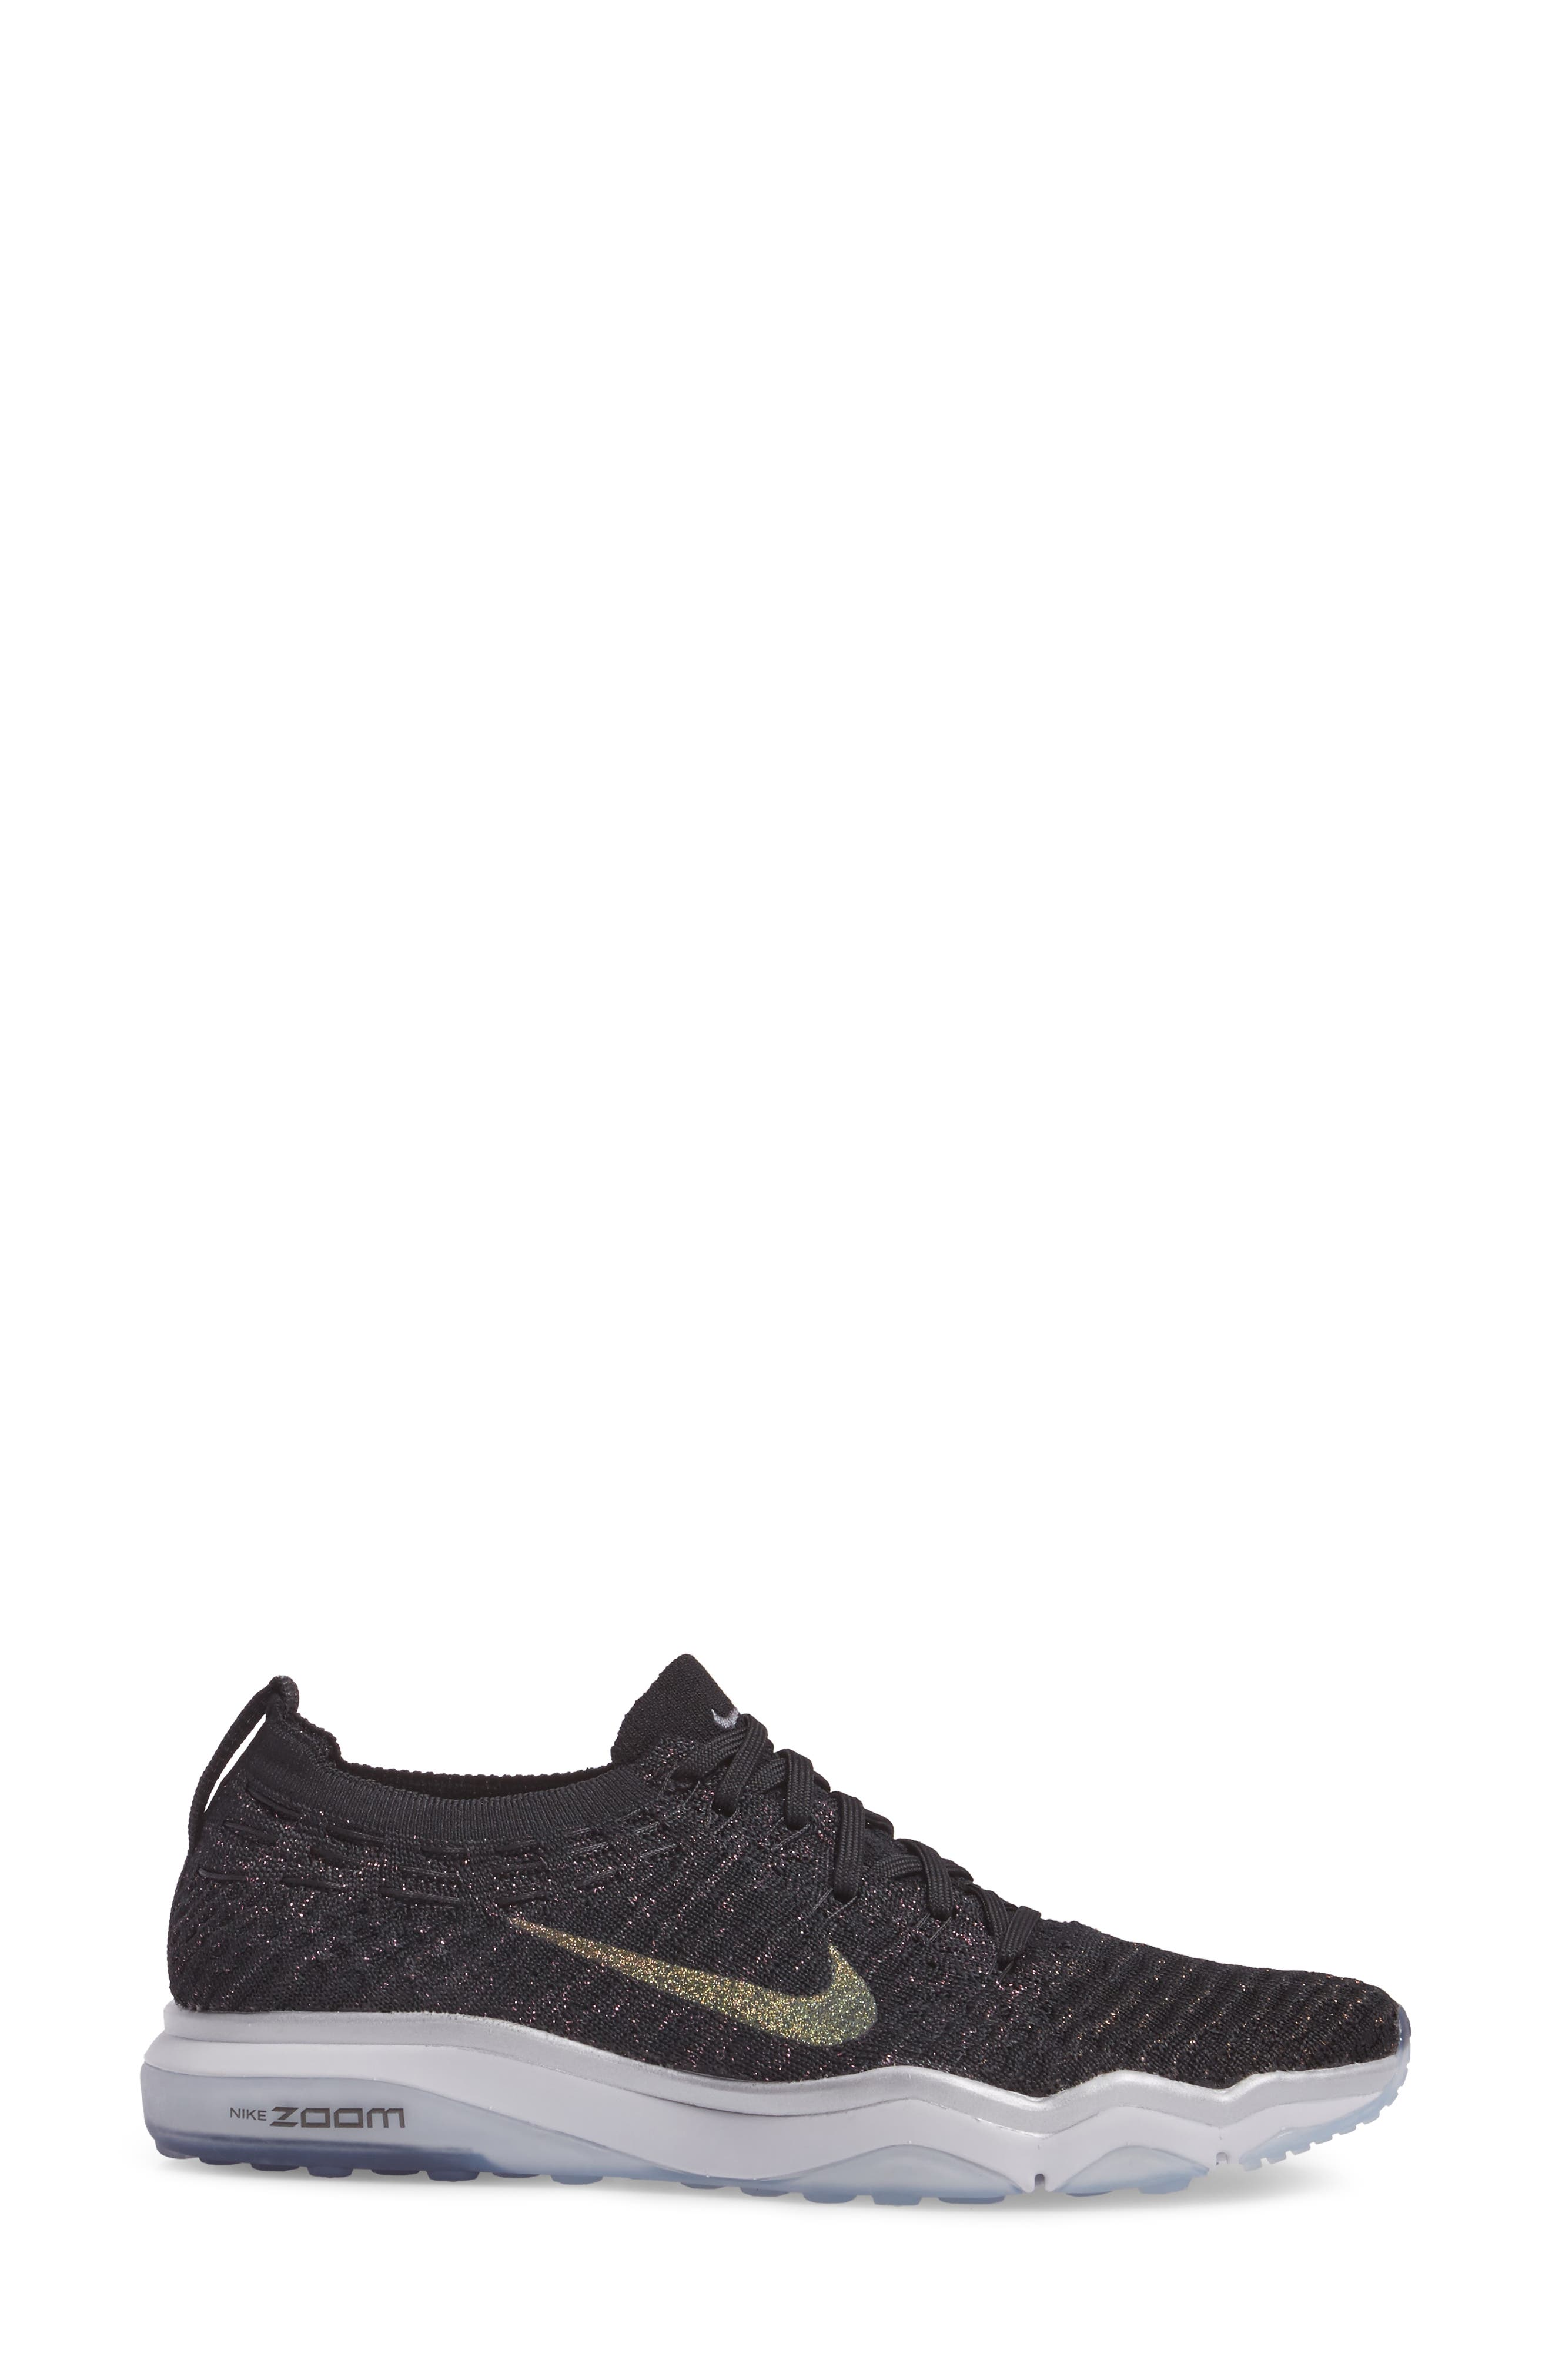 Air Zoom Fearless Flyknit Metallic Training Shoe,                             Alternate thumbnail 3, color,                             Black/ Dark Grey/ Silver